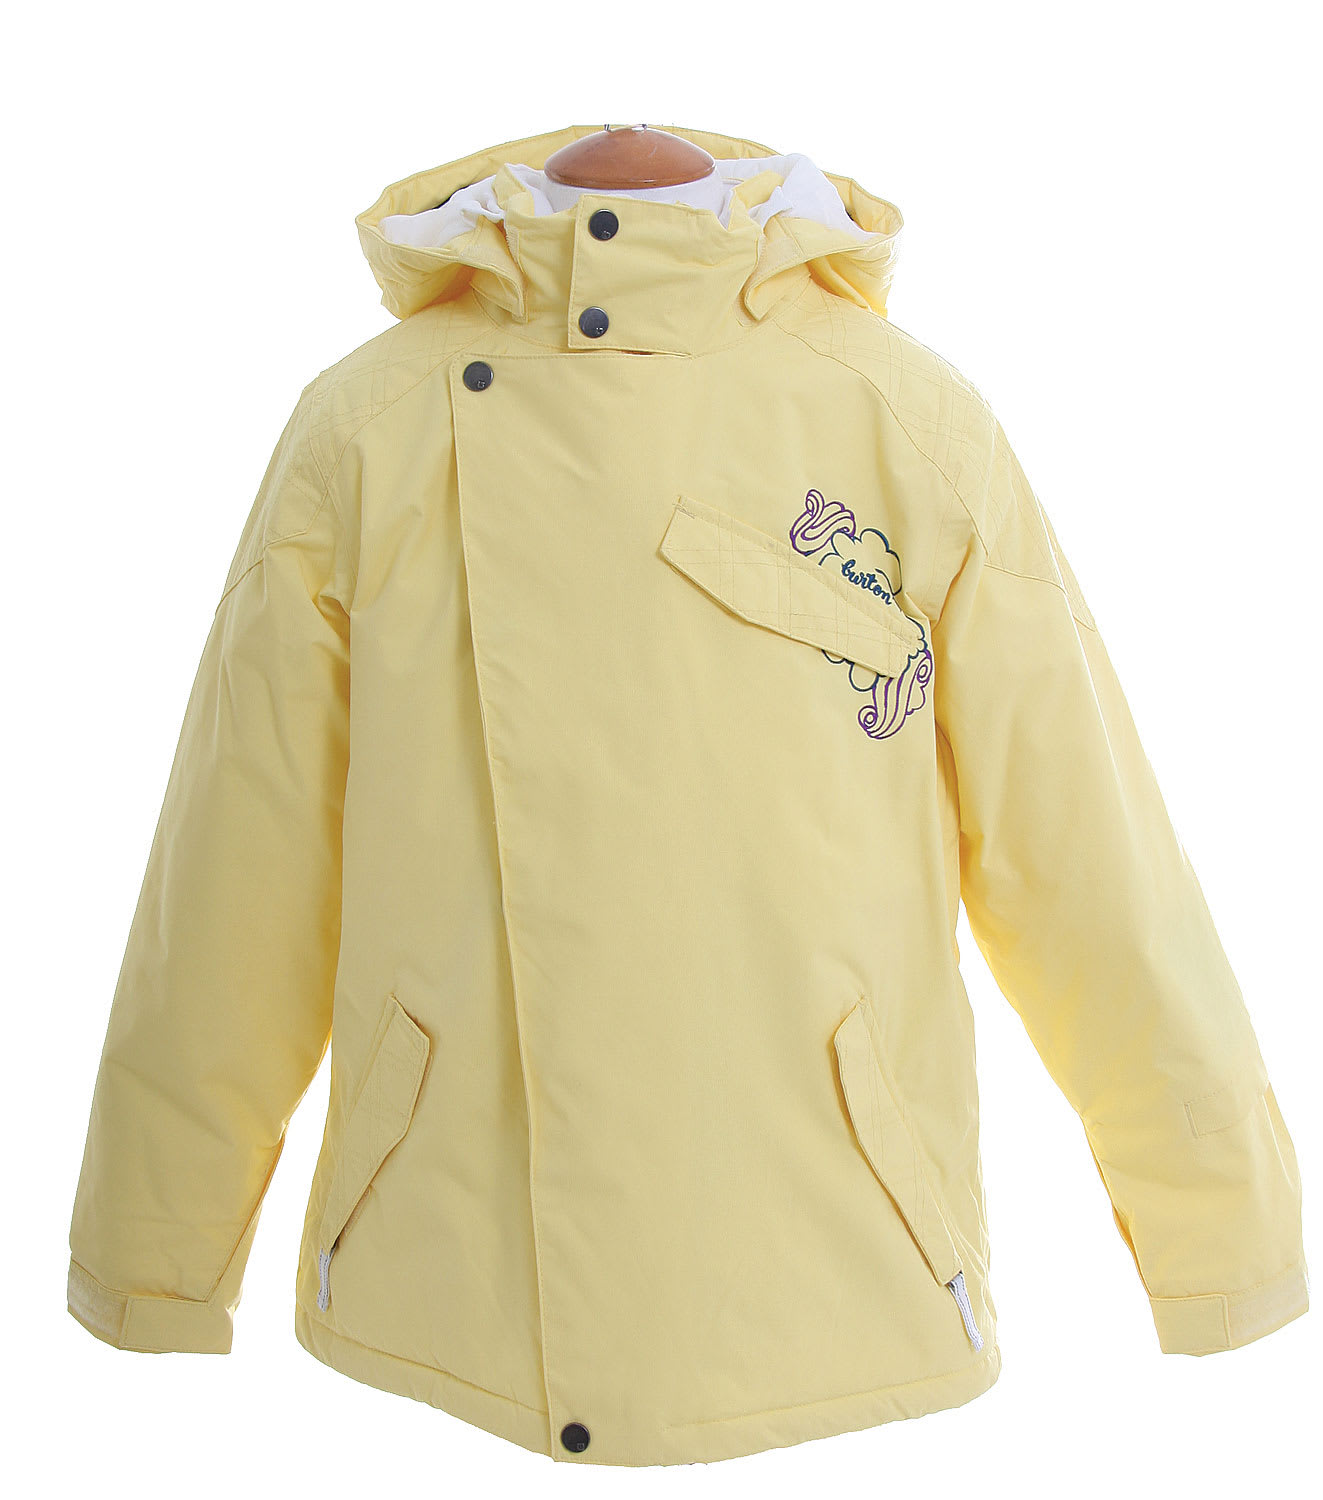 Shop for Burton Perception Snowboard Jacket Banana - Girl's